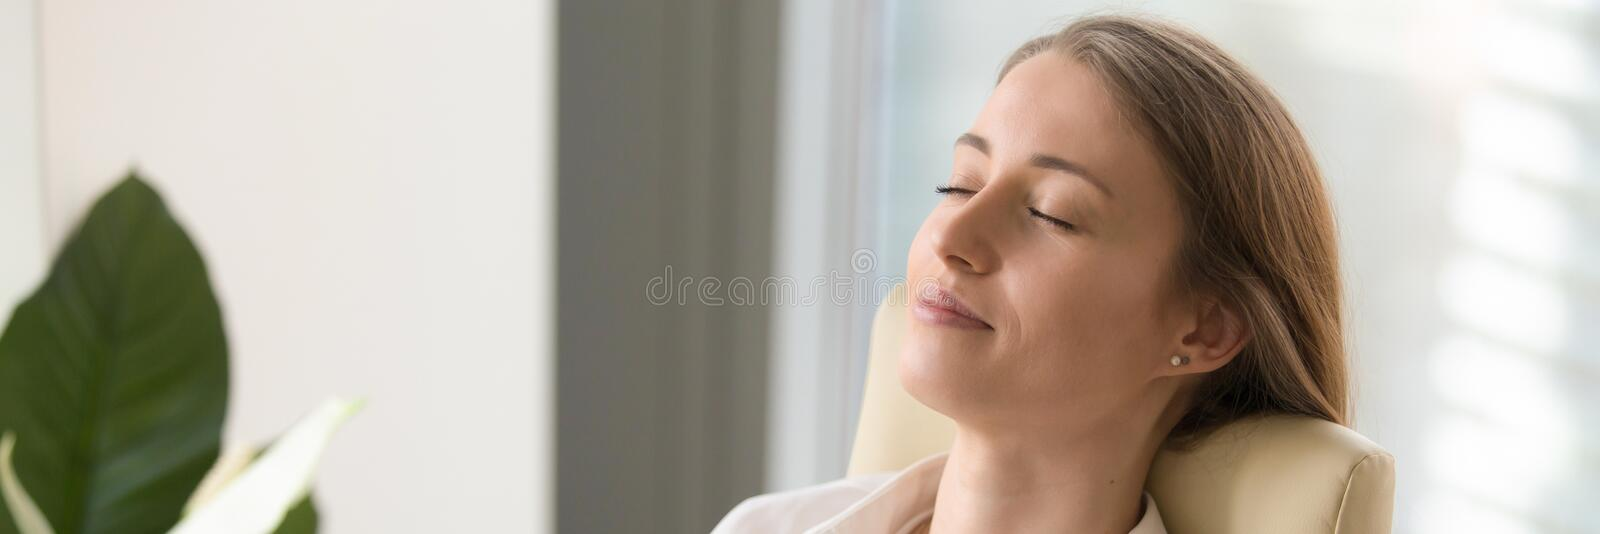 Horizontal image young woman closing eyes resting sitting on chair. Horizontal close up photo businesswoman worker rest leaning on chair at workplace closed eyes royalty free stock photography